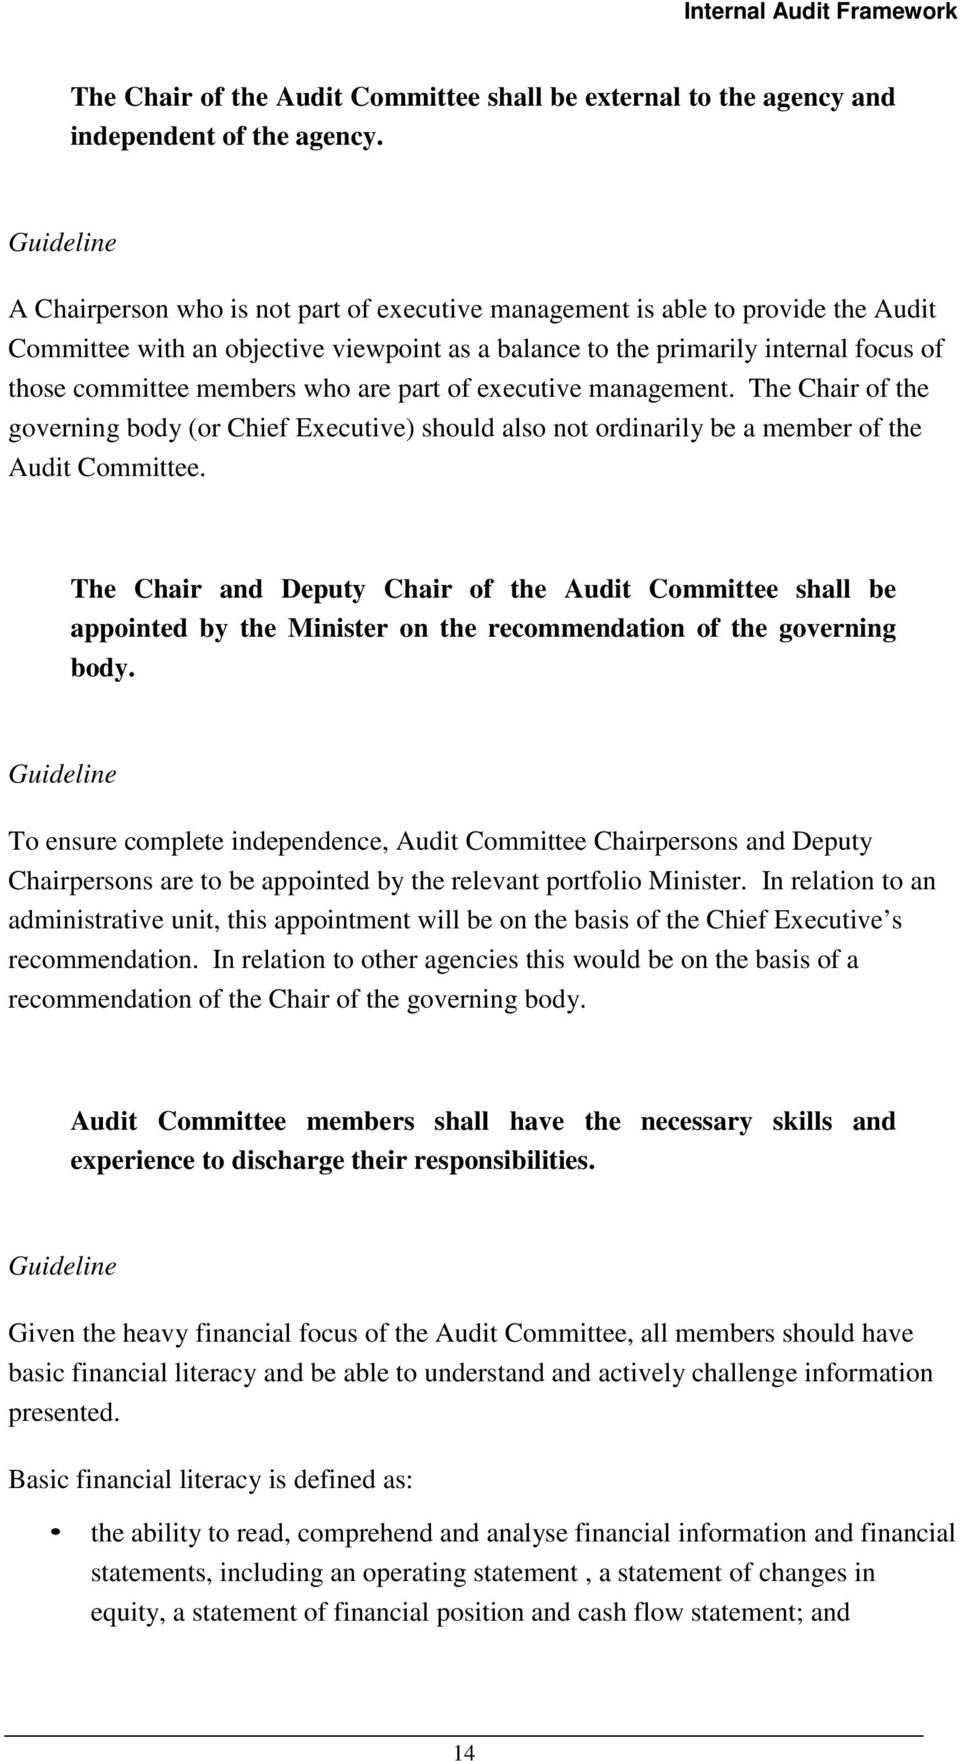 are part of executive management. The Chair of the governing body (or Chief Executive) should also not ordinarily be a member of the Audit Committee.